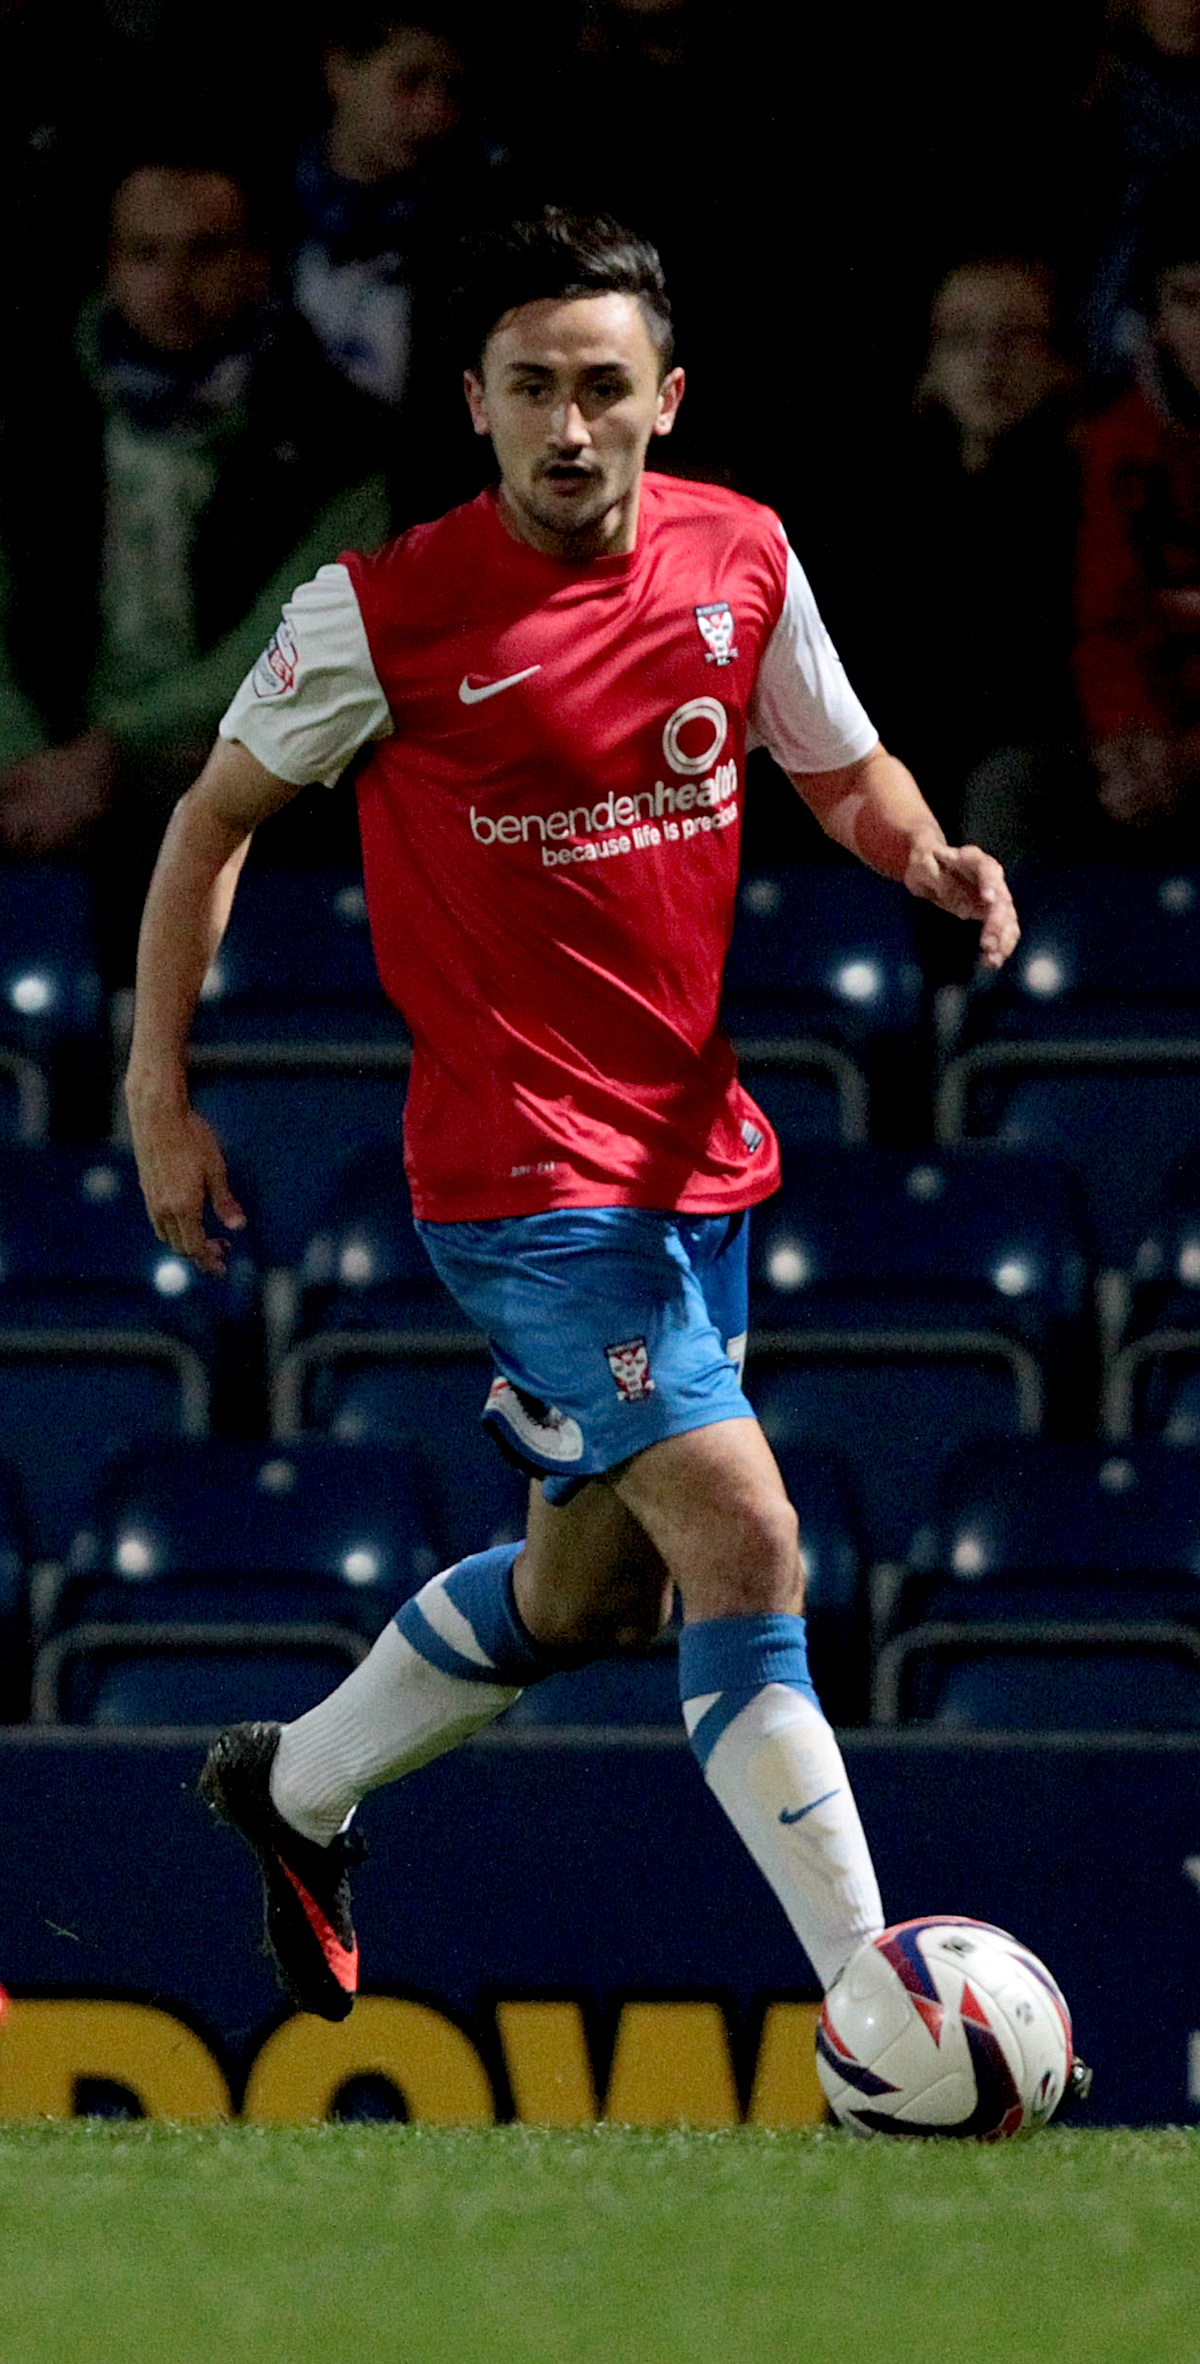 York City have re-signed Ryan Brobbel on loan from Middlesbrough